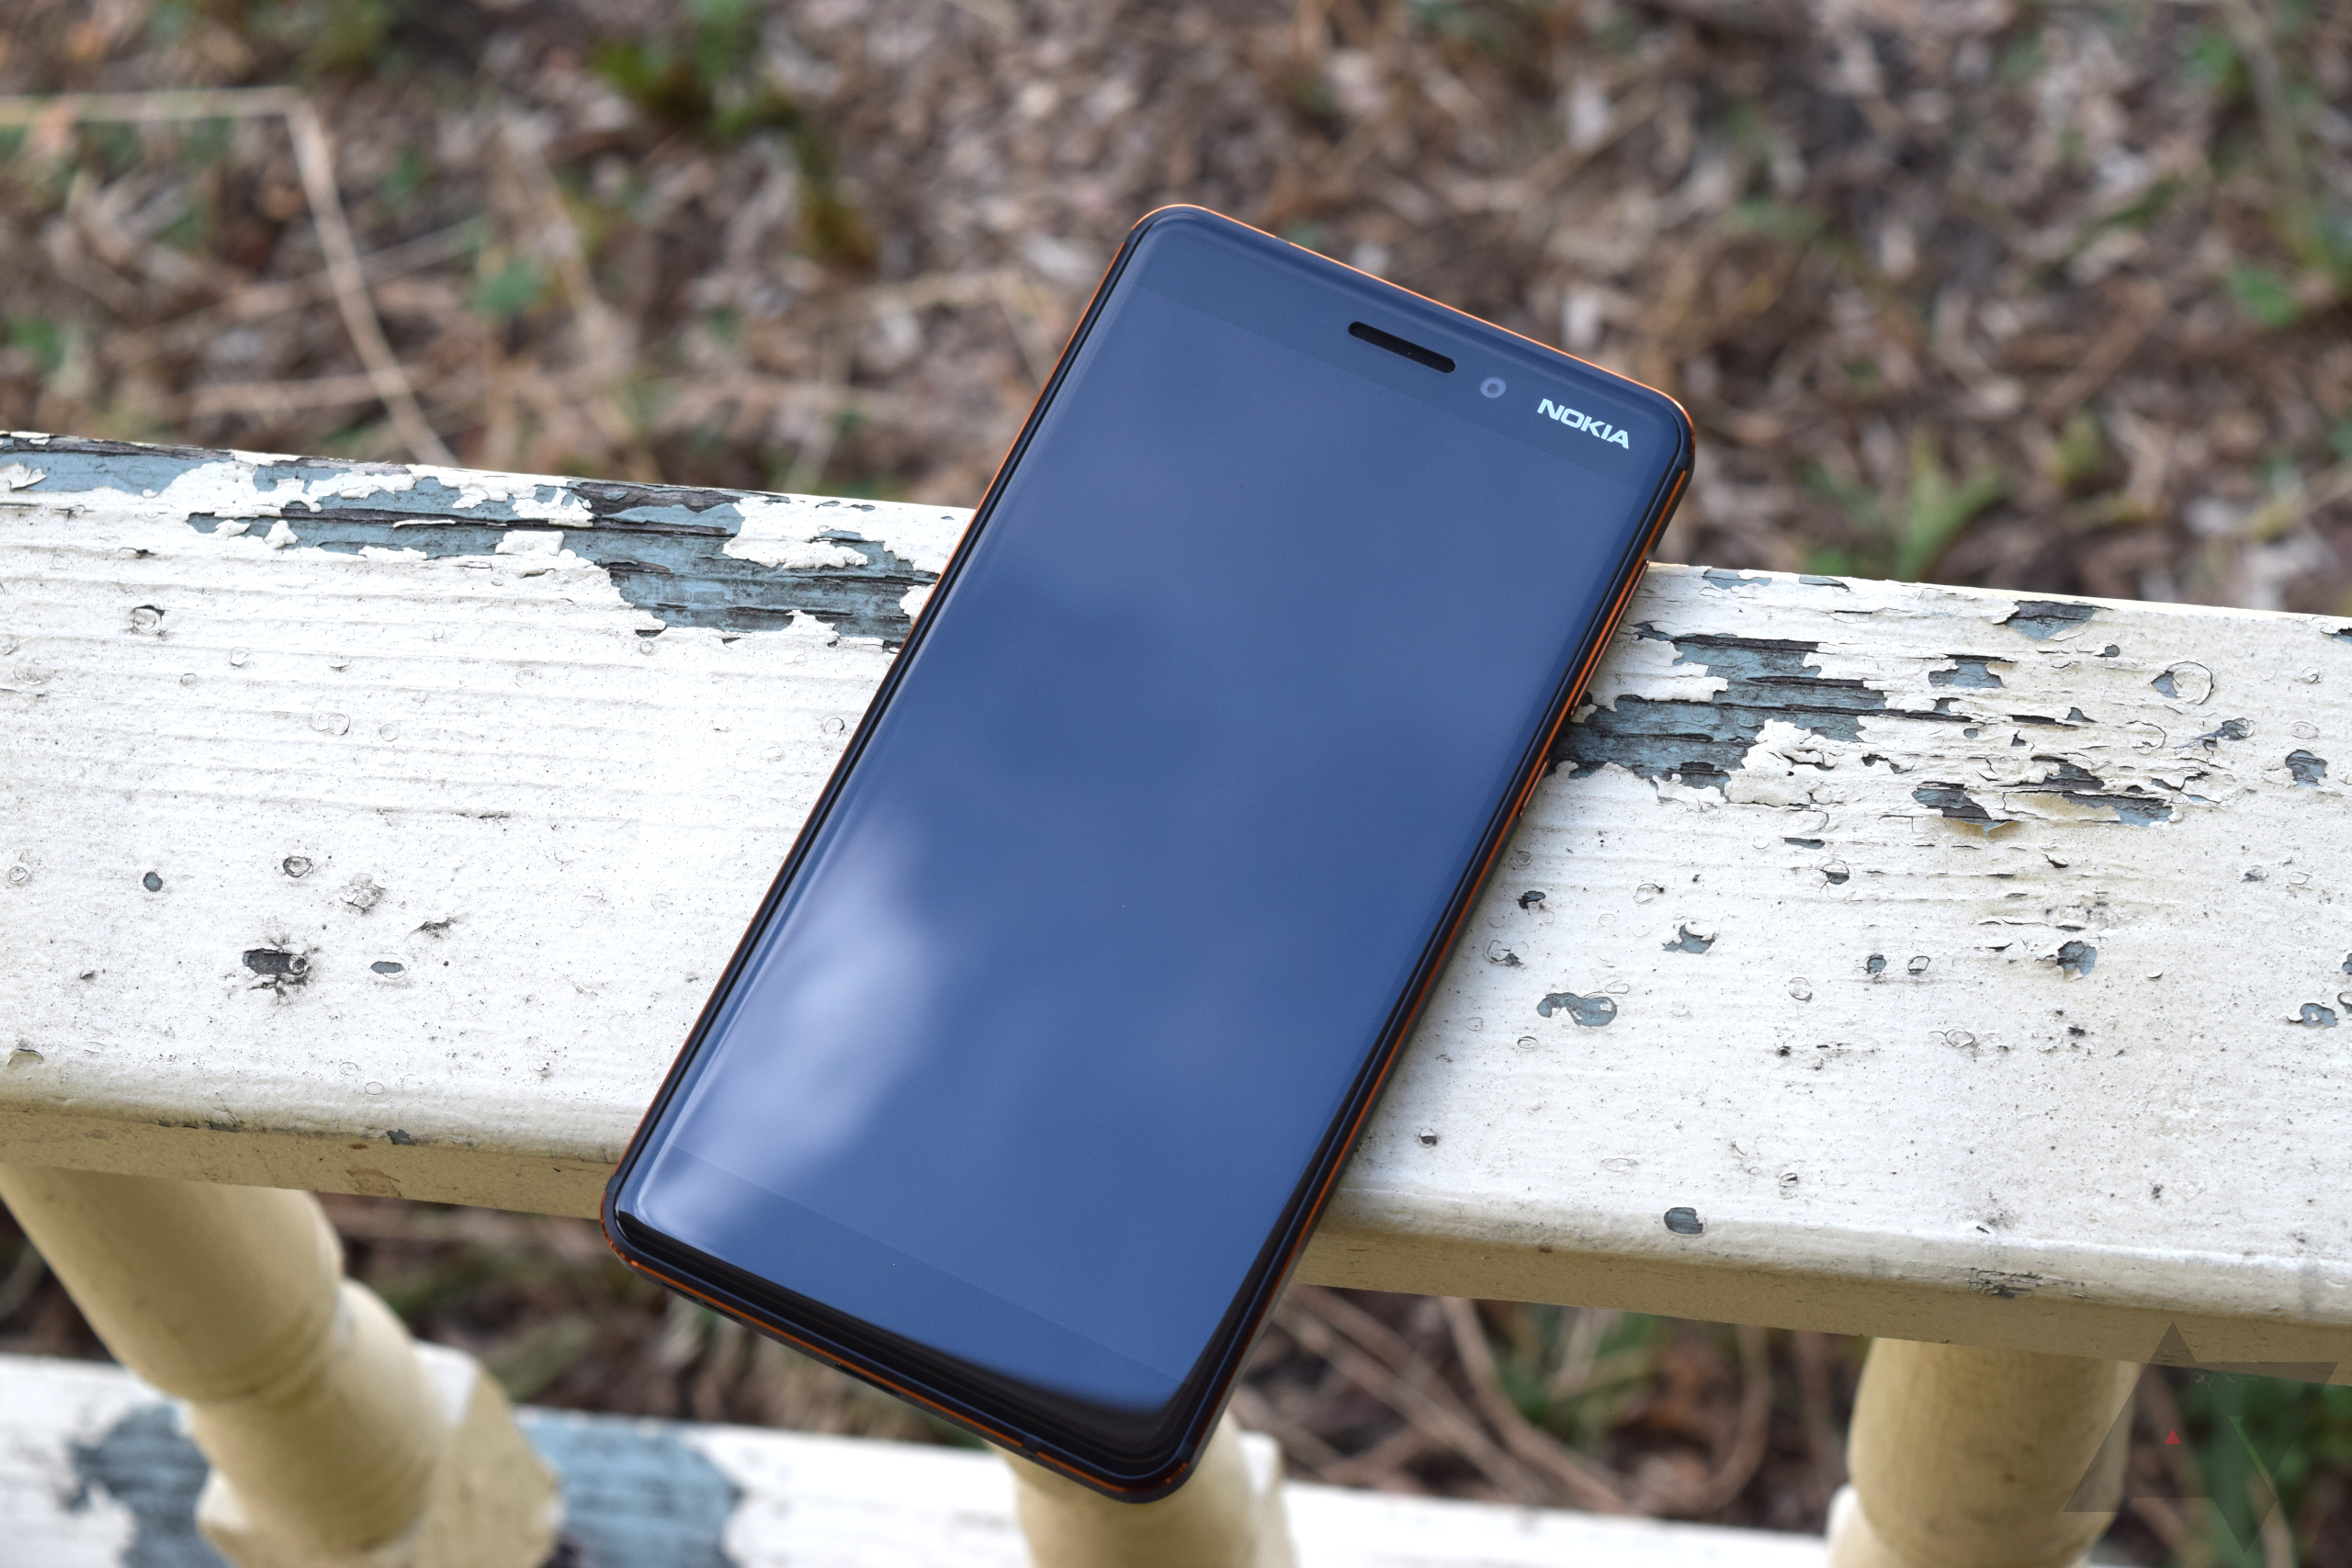 Nokia 6 1 review: The best budget phone of the year is not